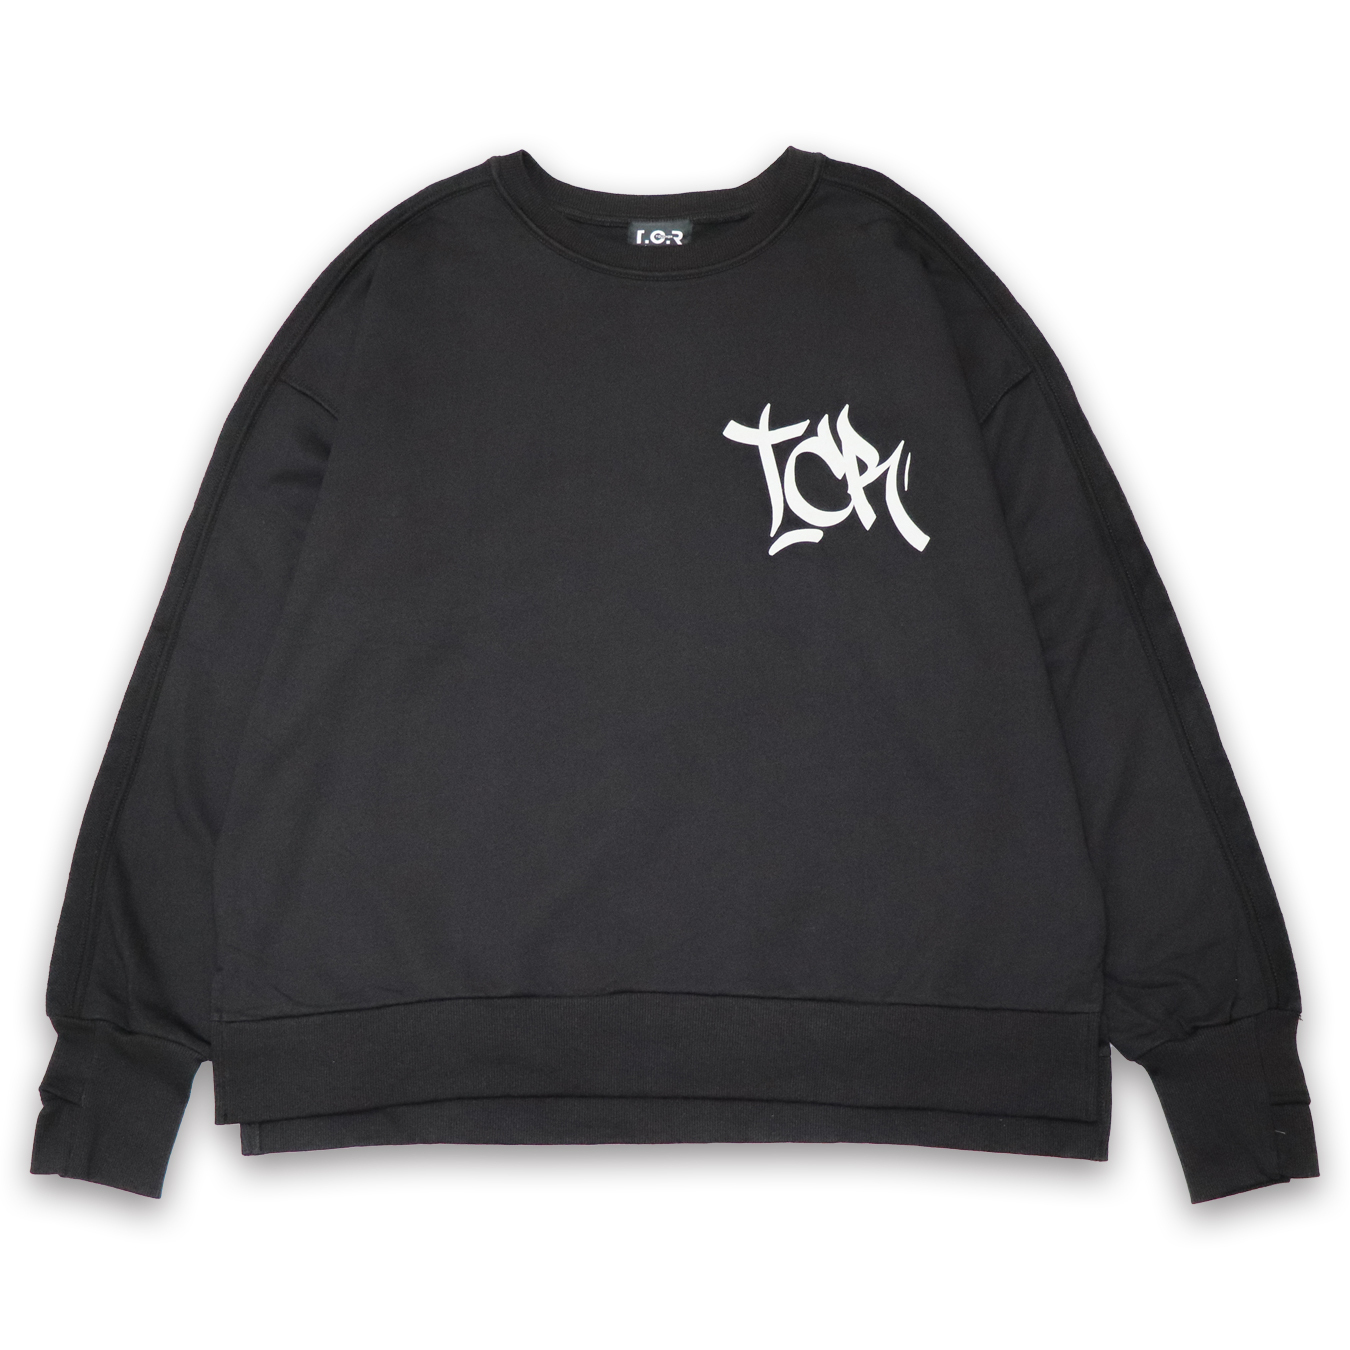 T.C.R FOAM LOGO CREW SWEAT - BLACK